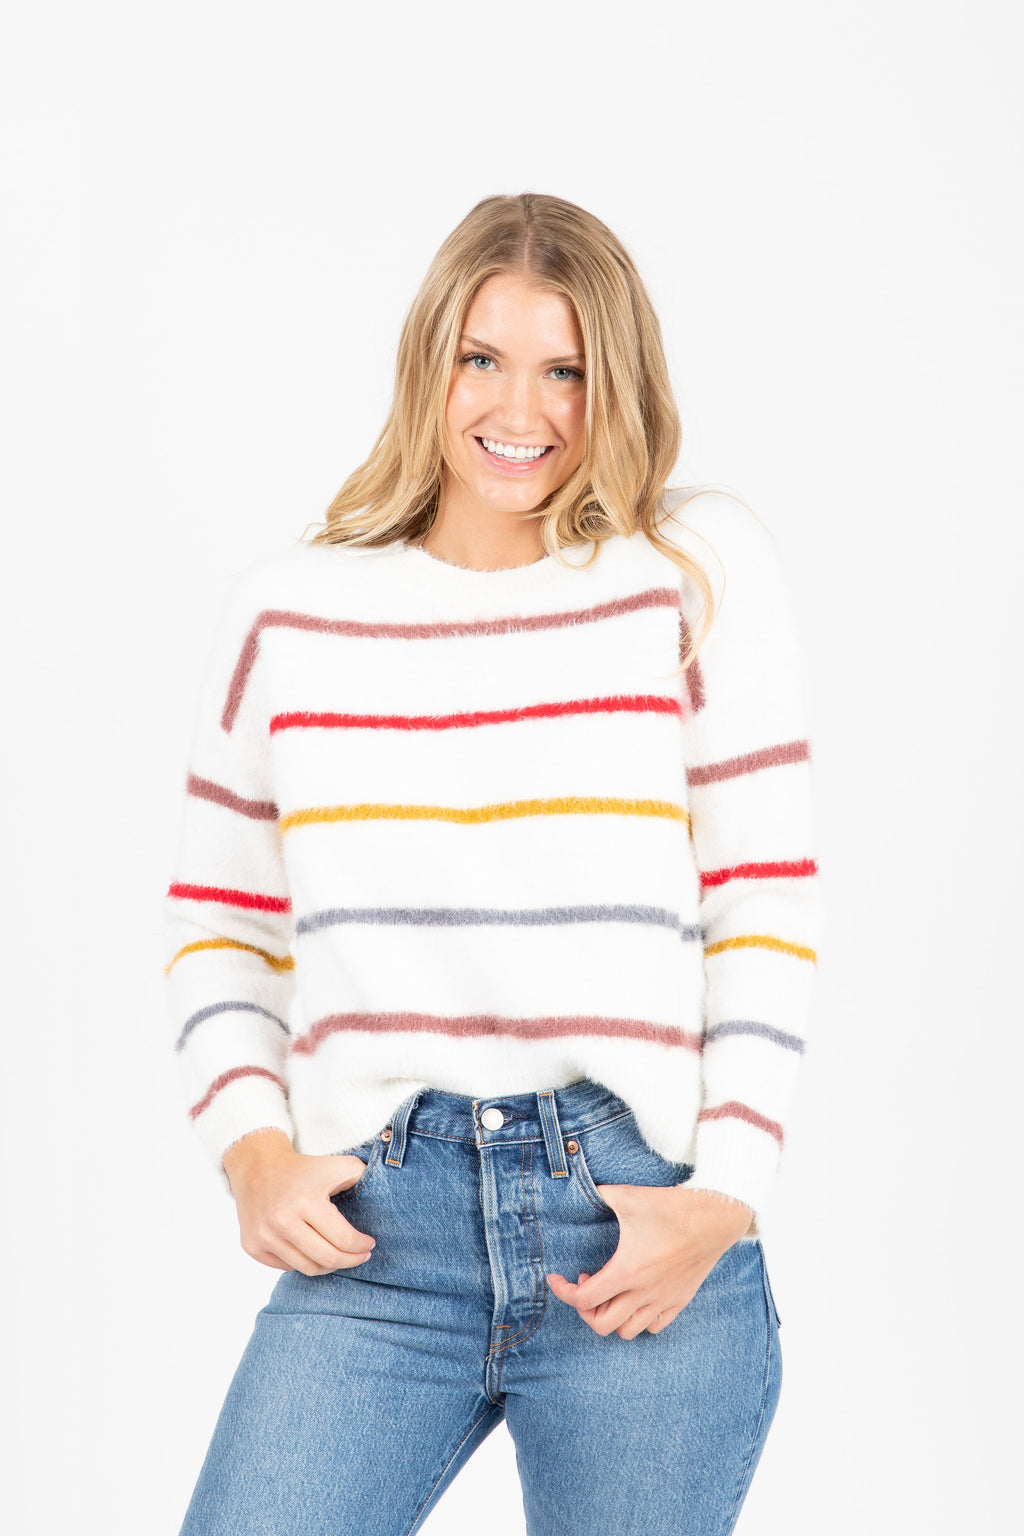 The Emerge Striped Cozy Sweater in Ivory